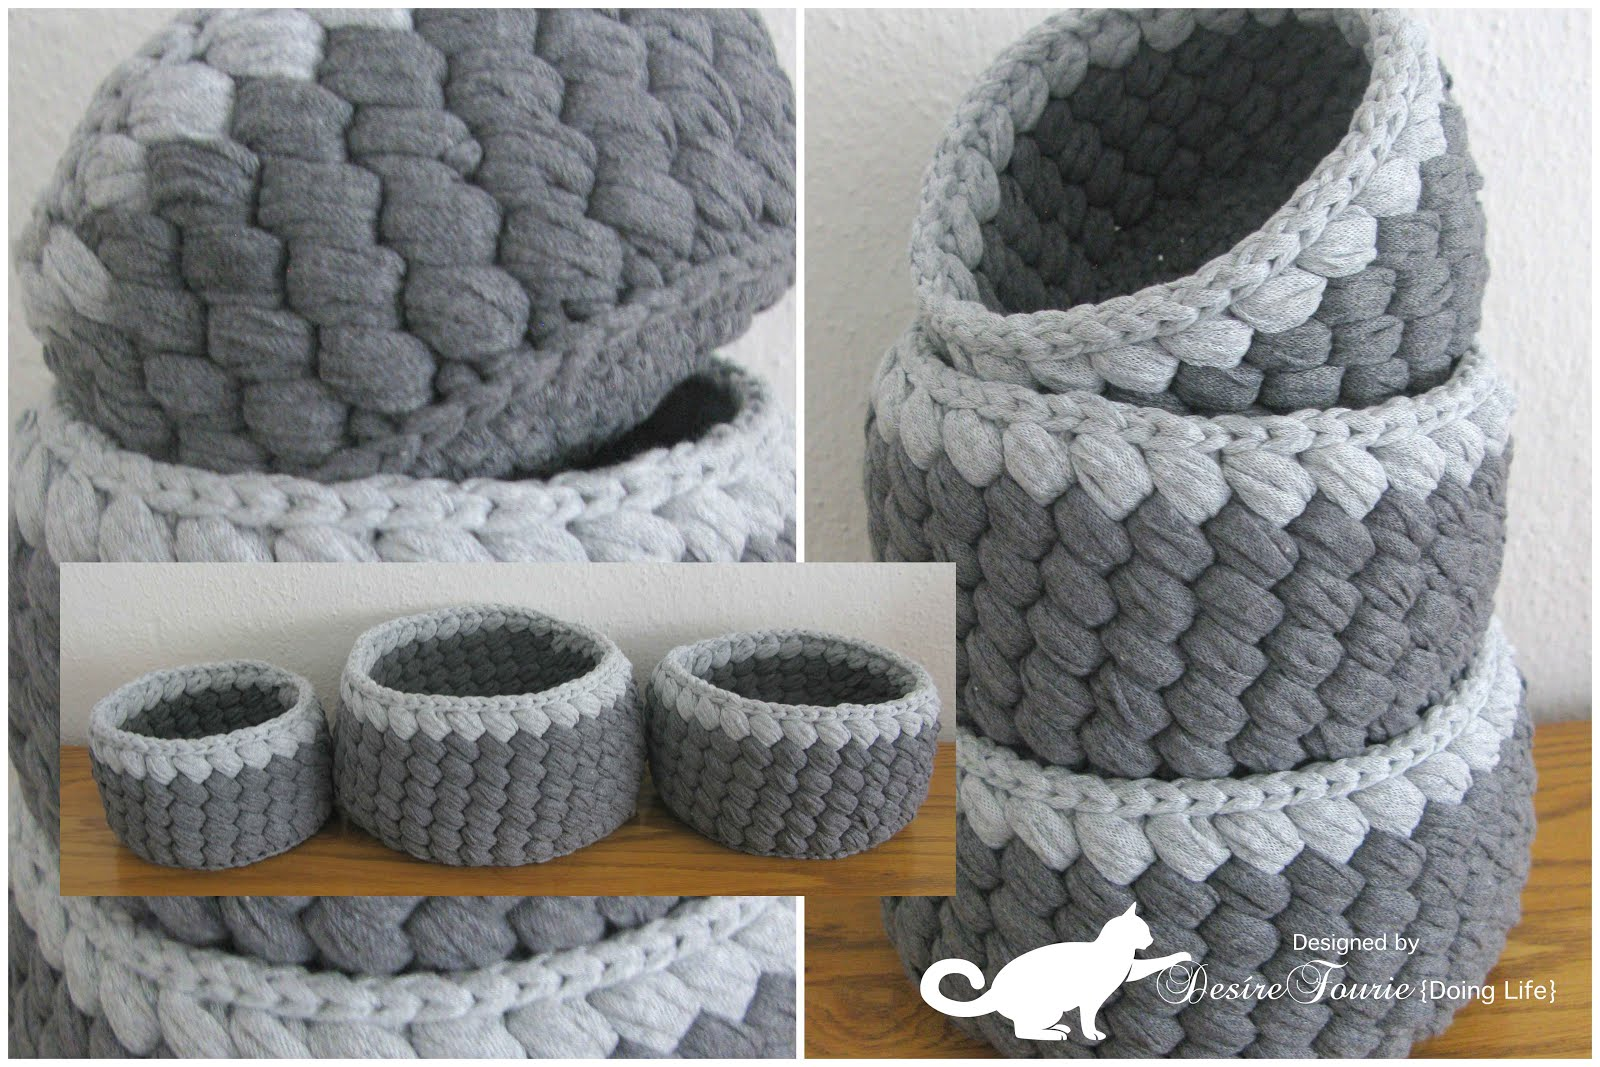 {DOING LIFE} CROCHET PROJECTS